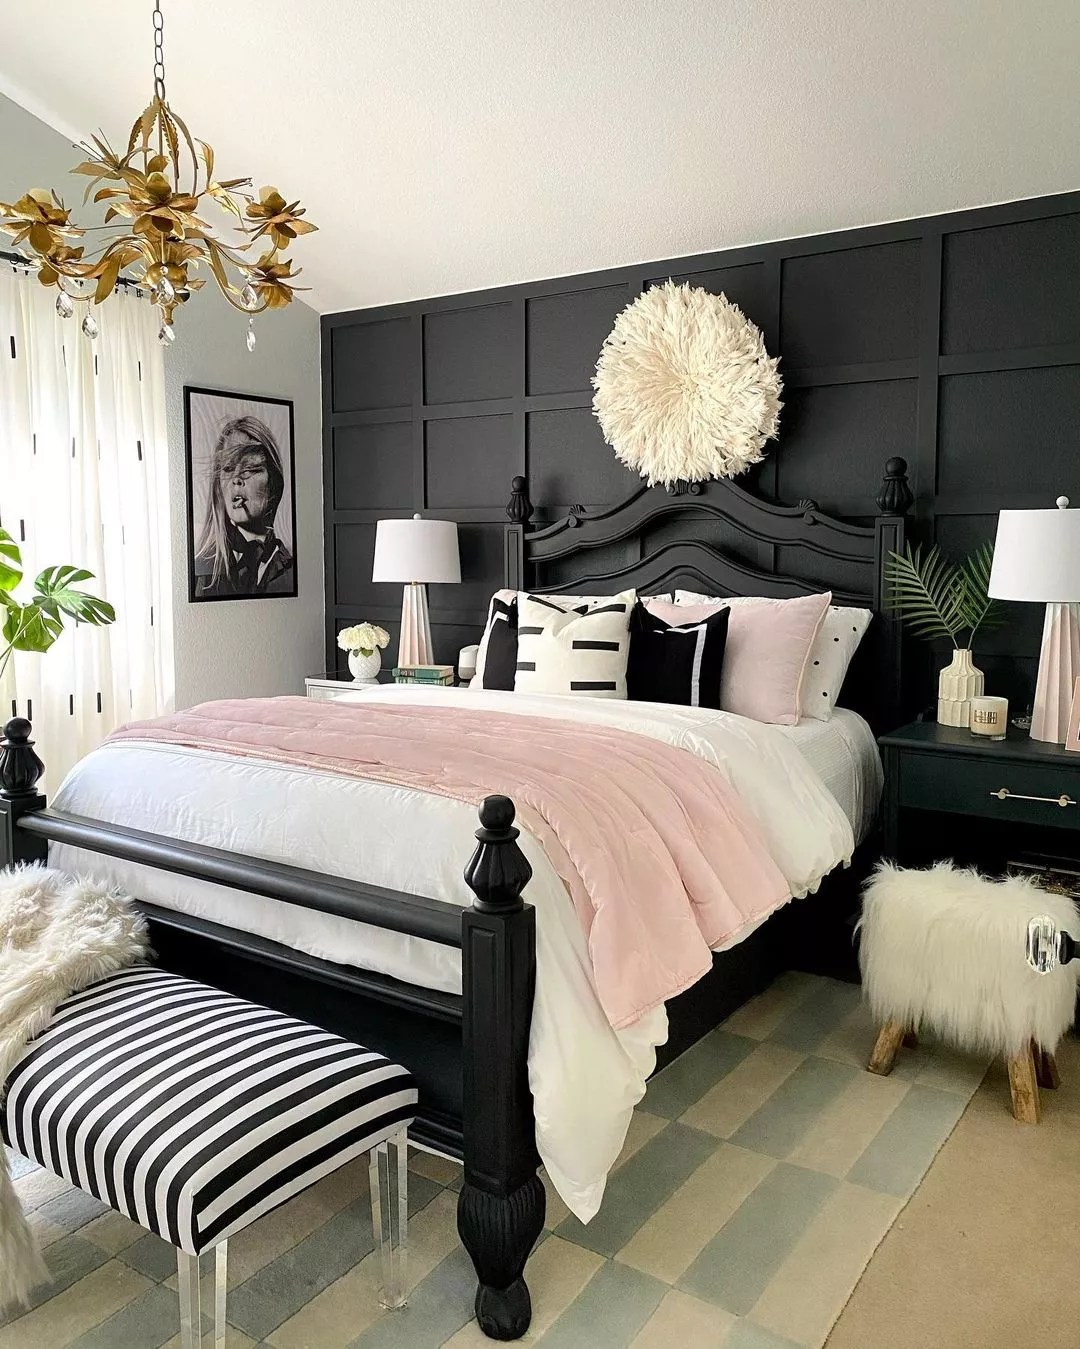 Trendy bedroom with a jet black accent wall. Photo by Instagram user @homeandfabulous.